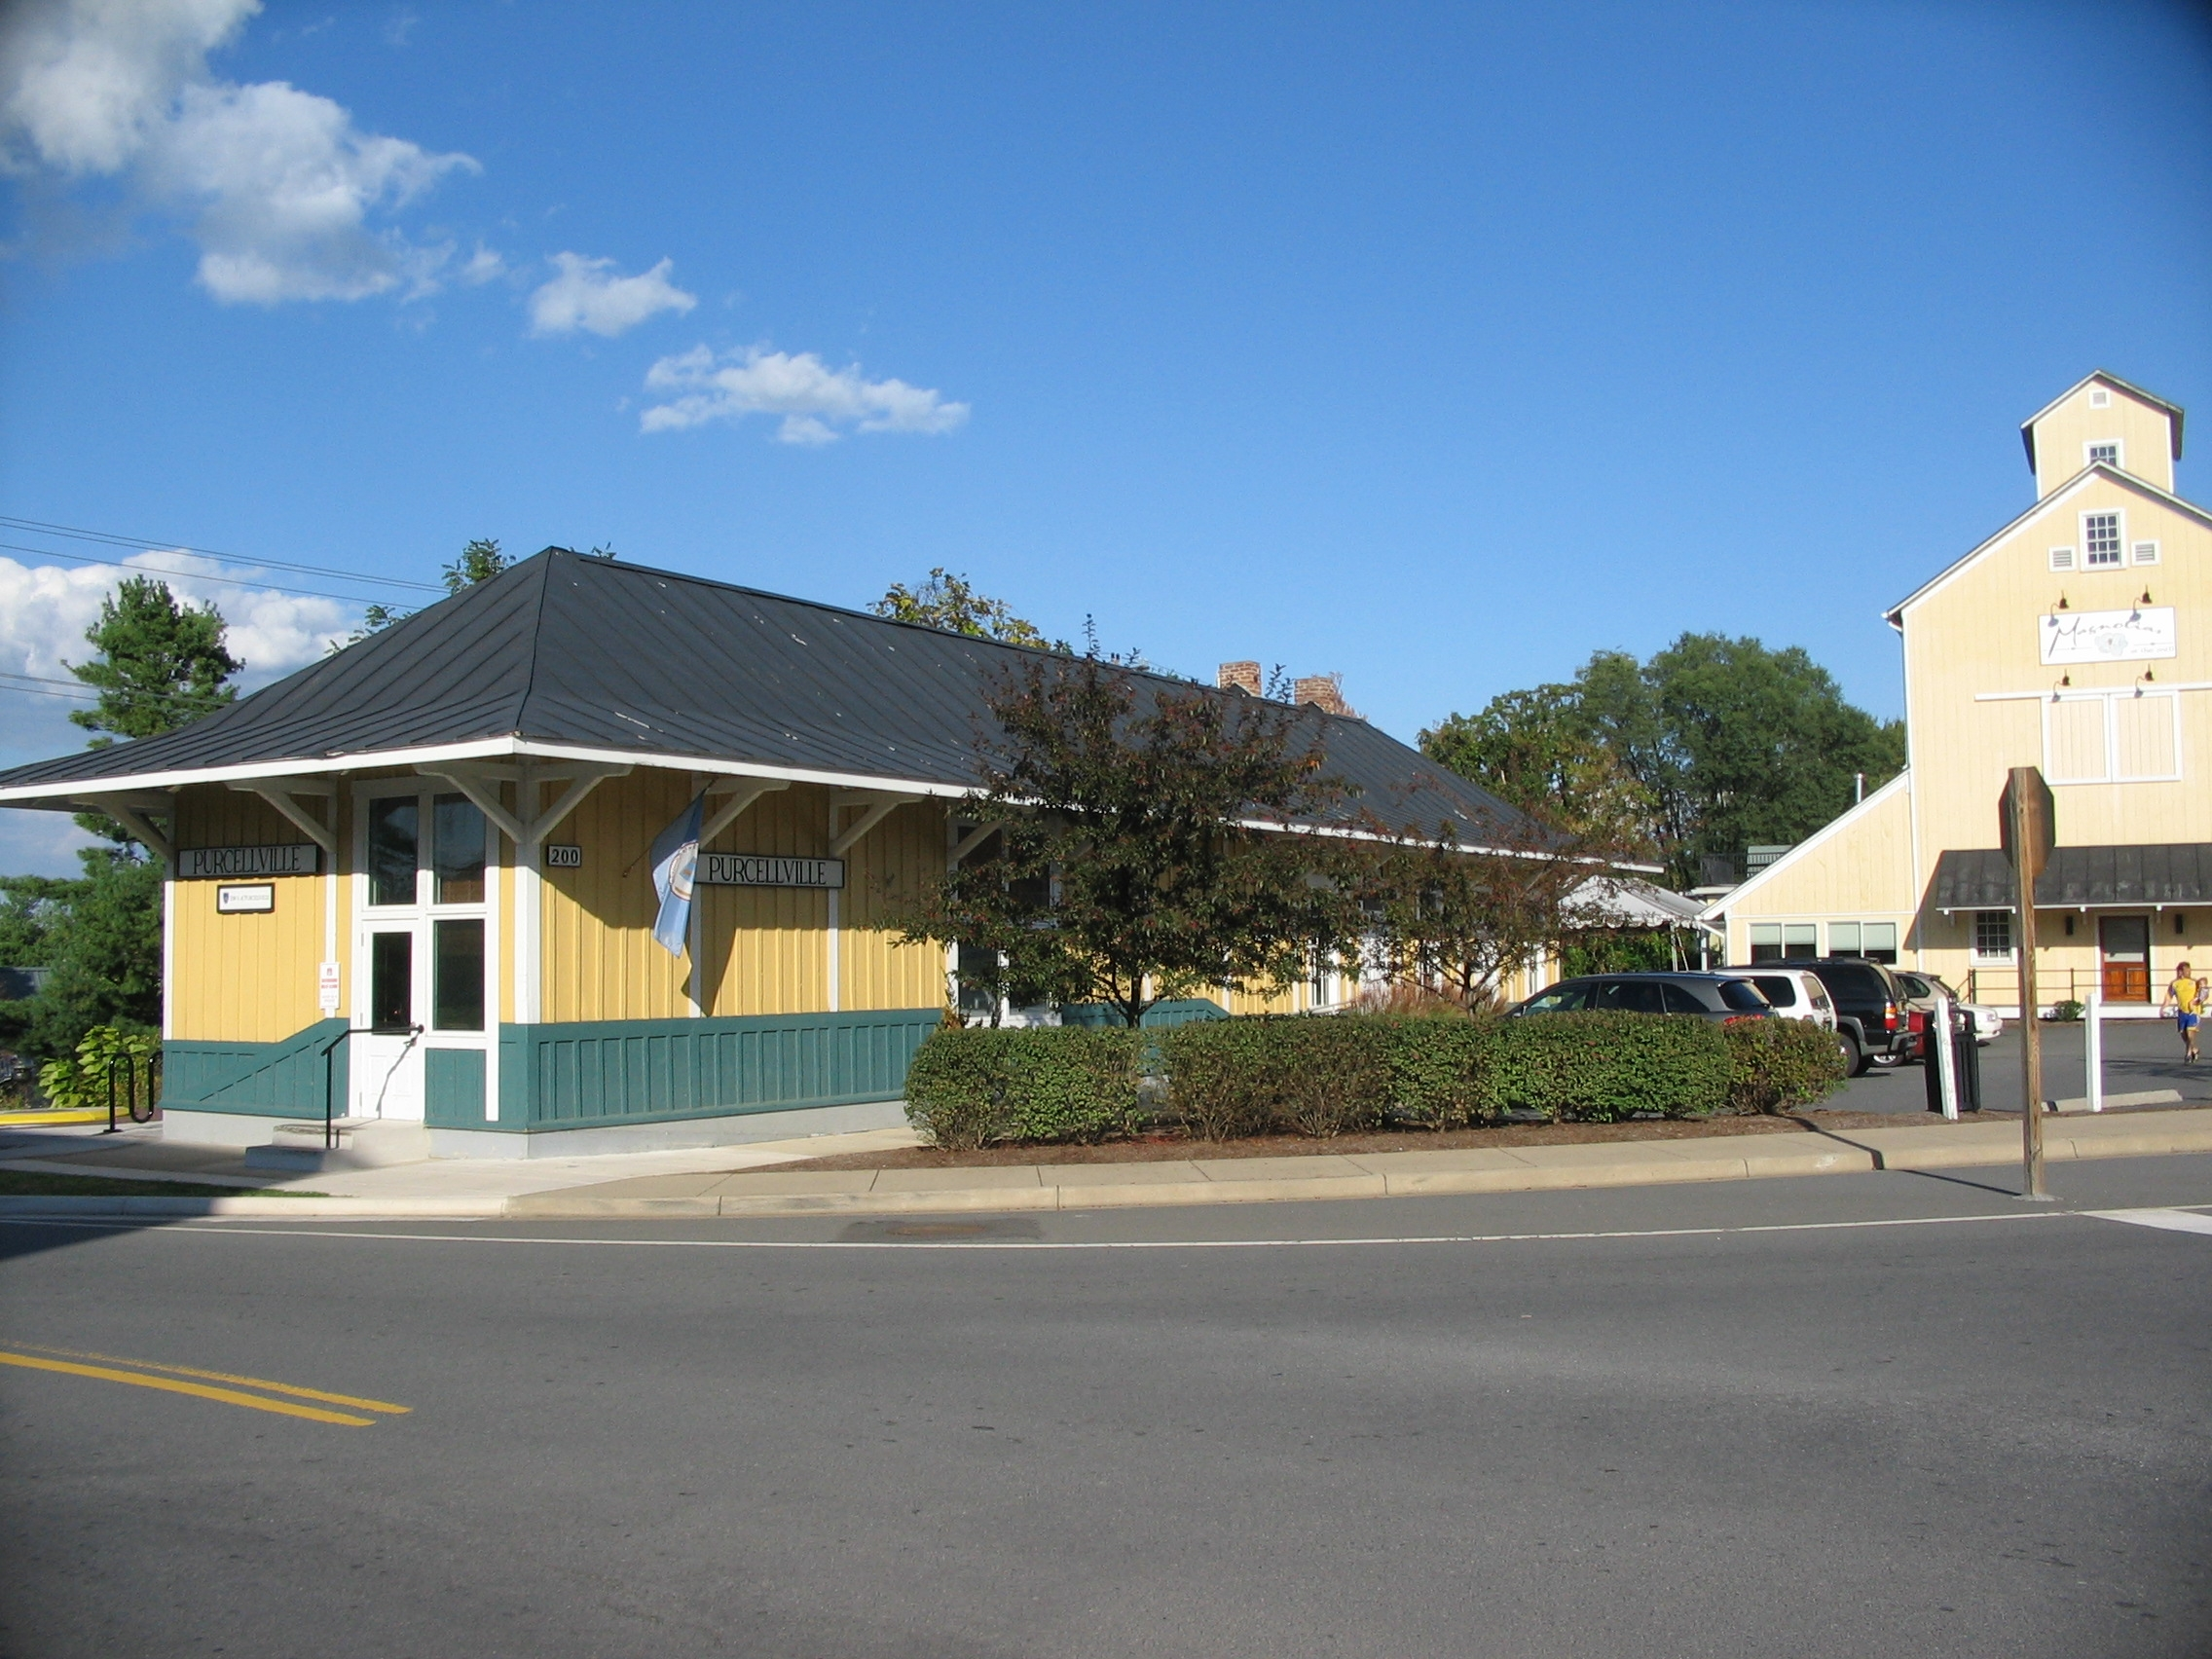 Purcellville Station Today